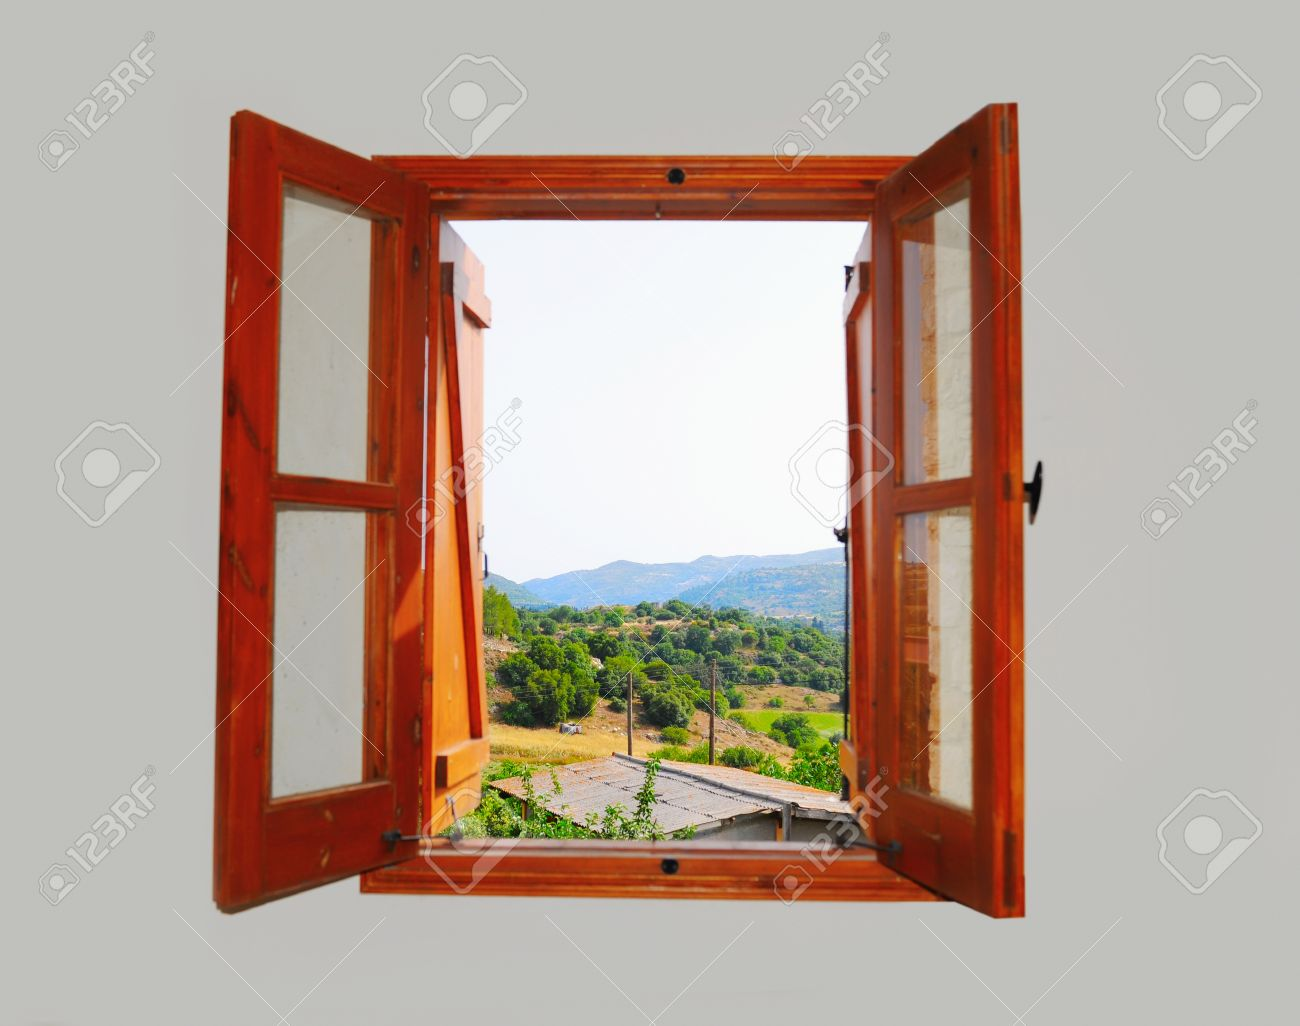 mountain views from the window Stock Photo - 19824055